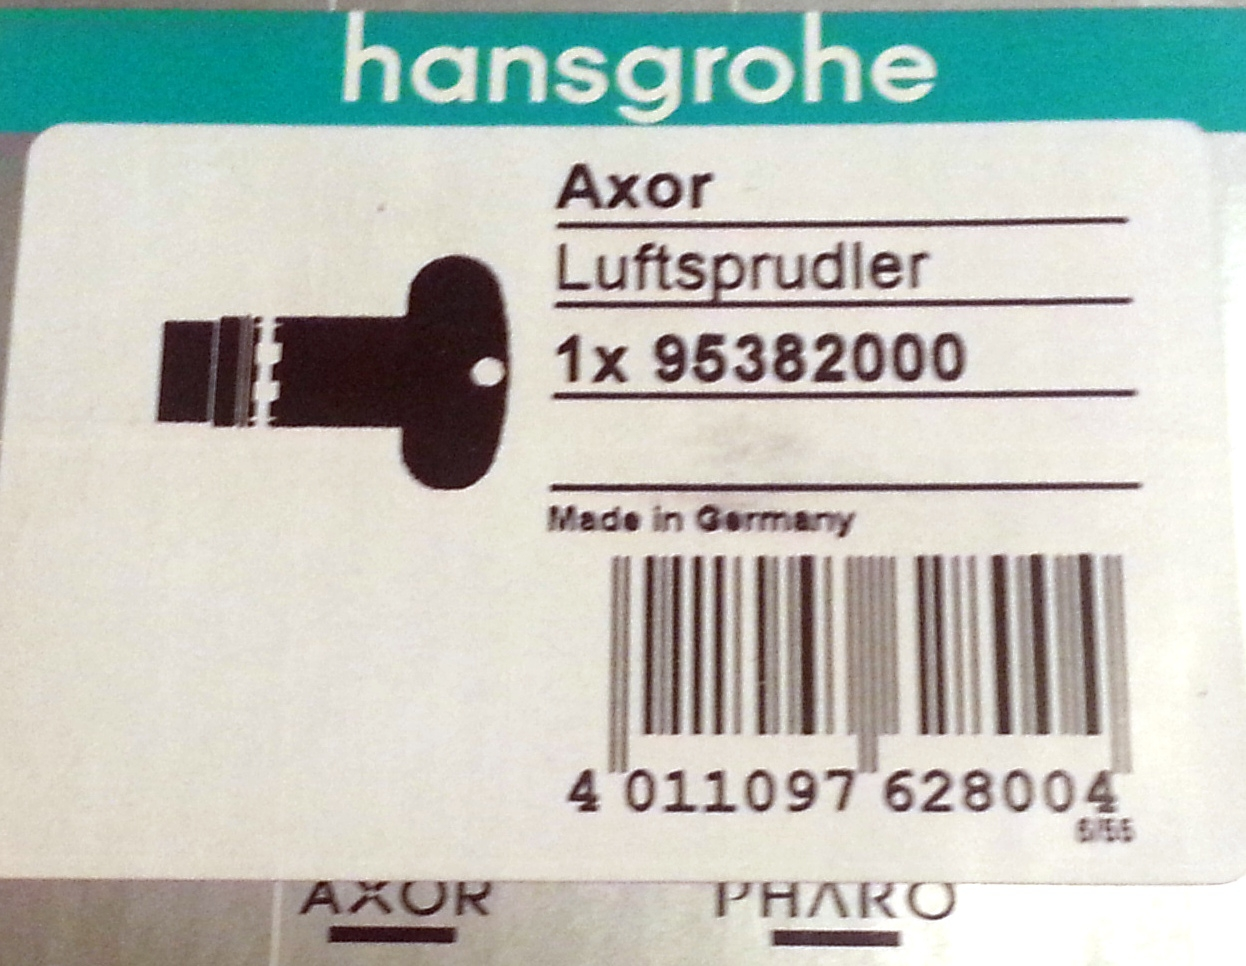 hansgrohe luftsprudler axor axor citterio m 15 gpm chrom 95382000 meinbad. Black Bedroom Furniture Sets. Home Design Ideas